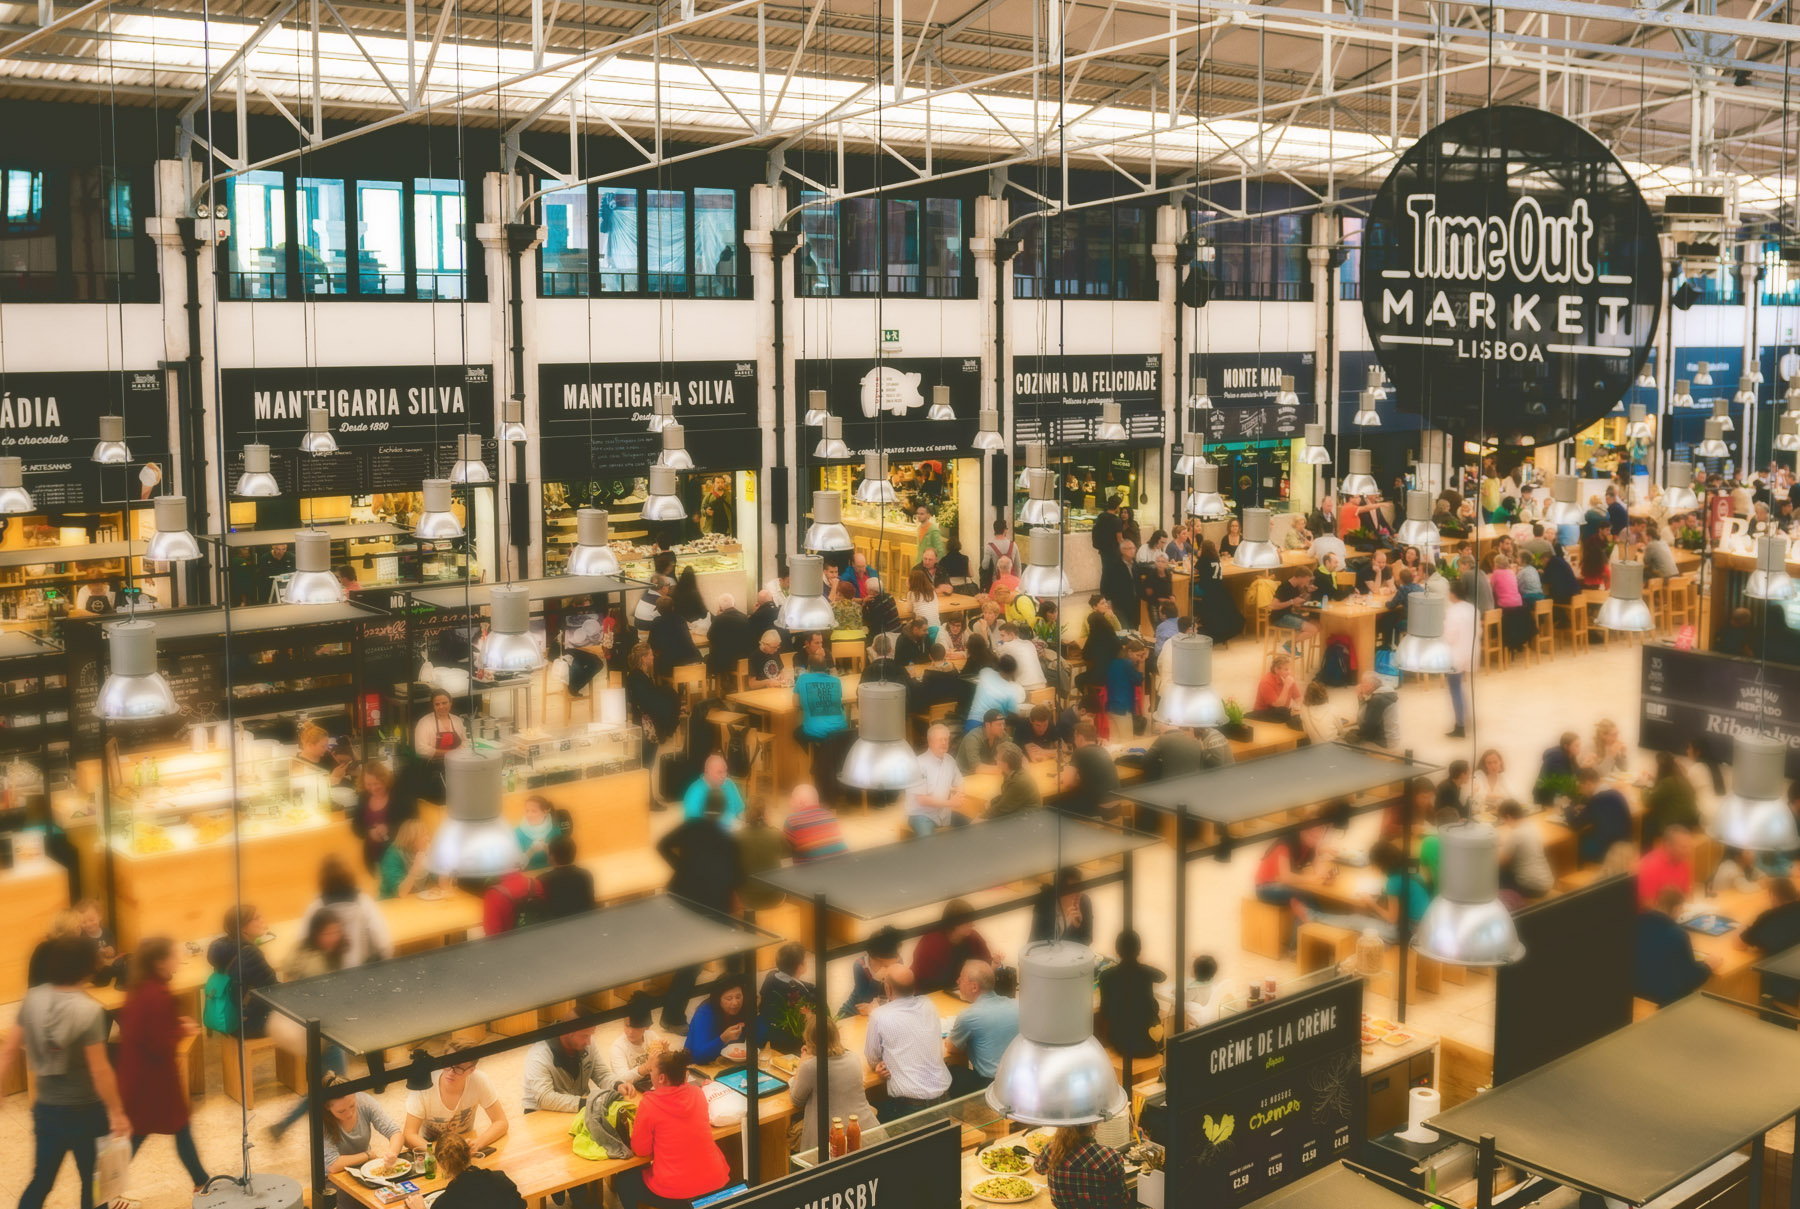 Time Out Market – Lisbon - Interior